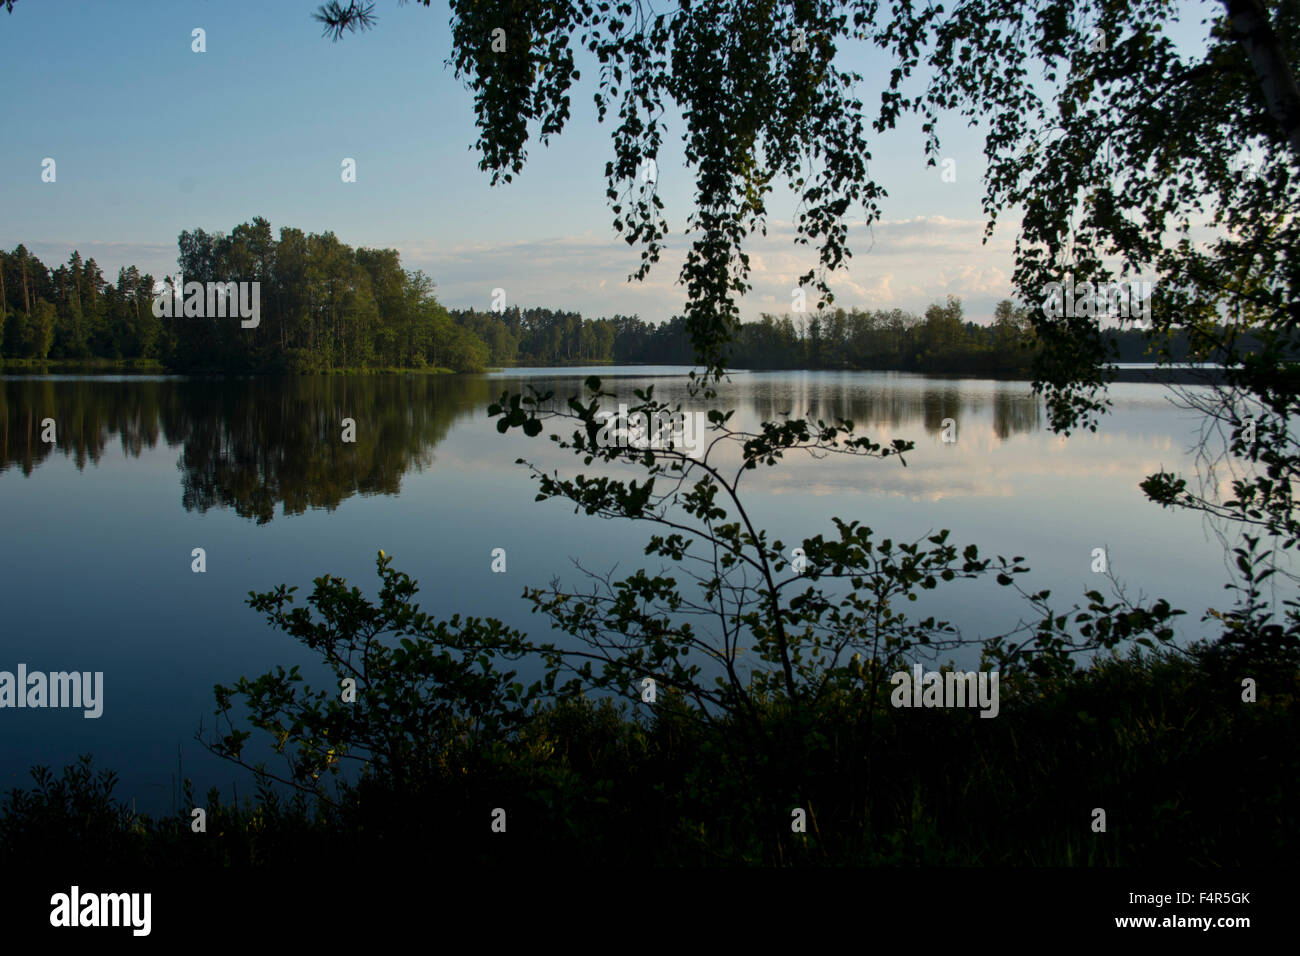 Sweden, Europe, Smaland, Markaryd, Store Sjö, lake, shore, trees, summer, islands, Stock Photo